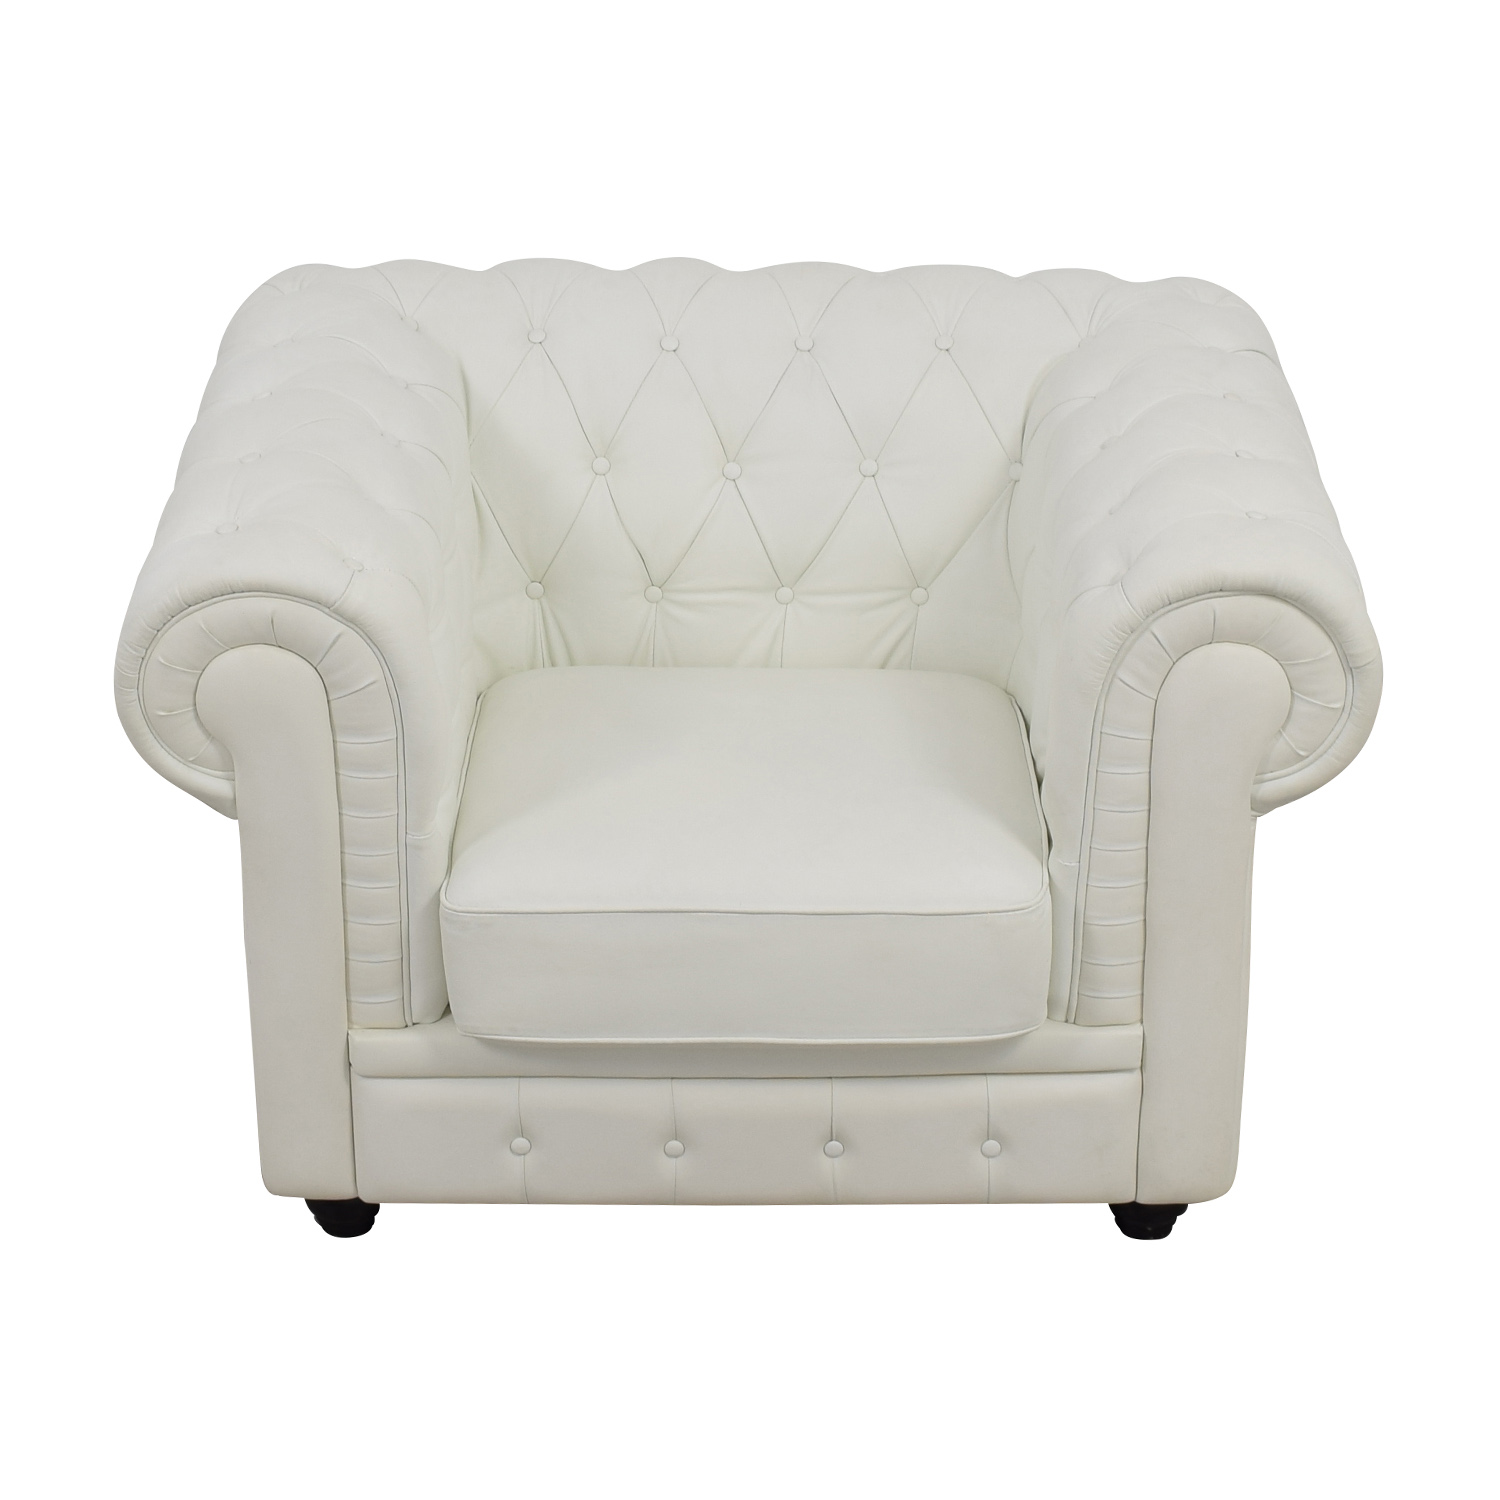 Chesterfield Tufted White Leather Accent Chair Used; Chesterfield Tufted  White Leather Accent Chair On Sale ...